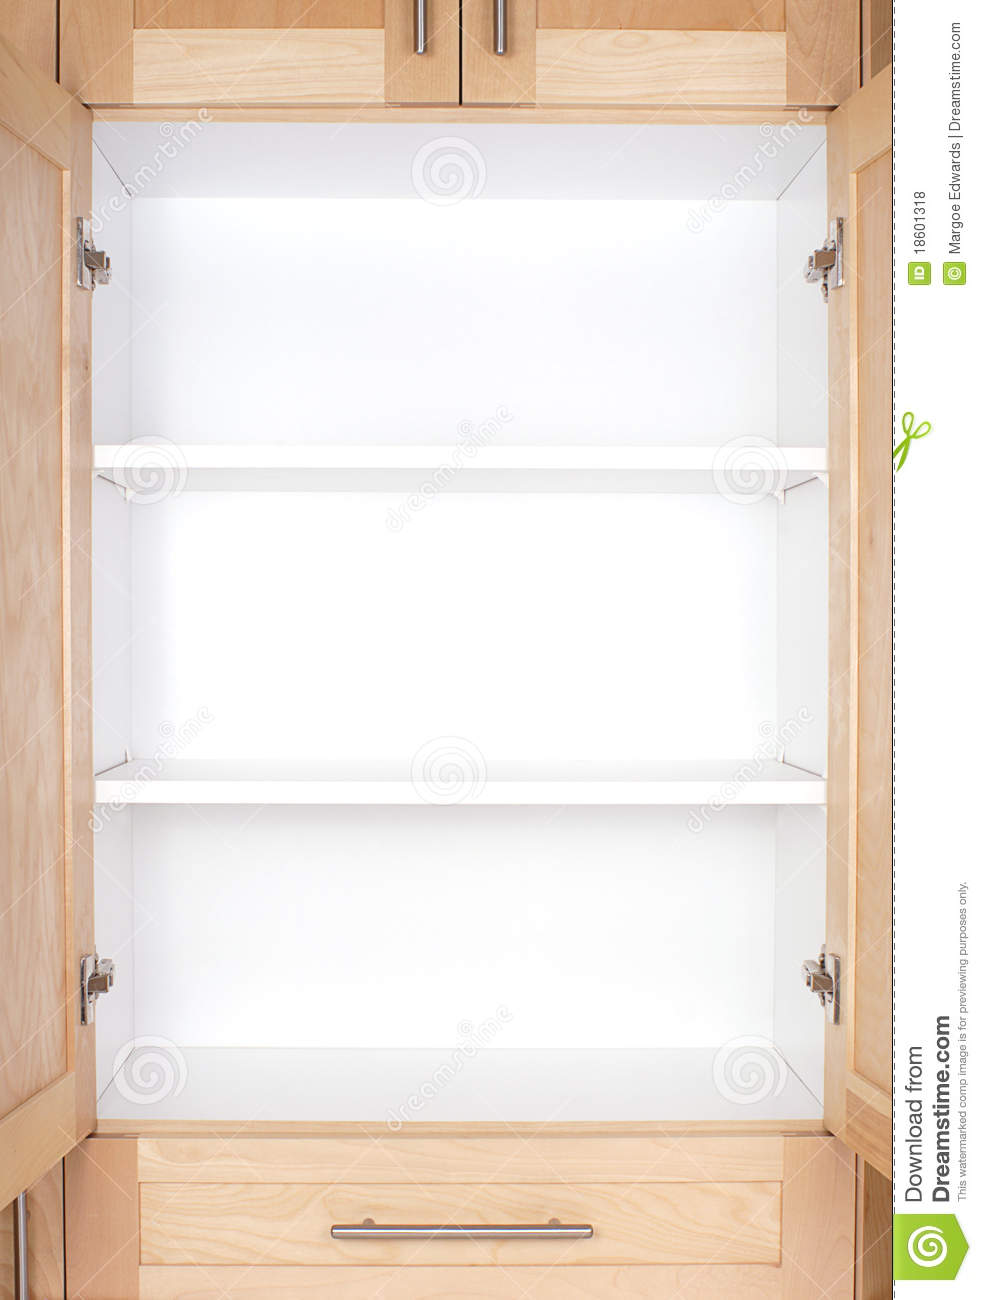 kitchen pantry cabinet plans corner drawer empty cupboard royalty free stock photos - image: 18601318